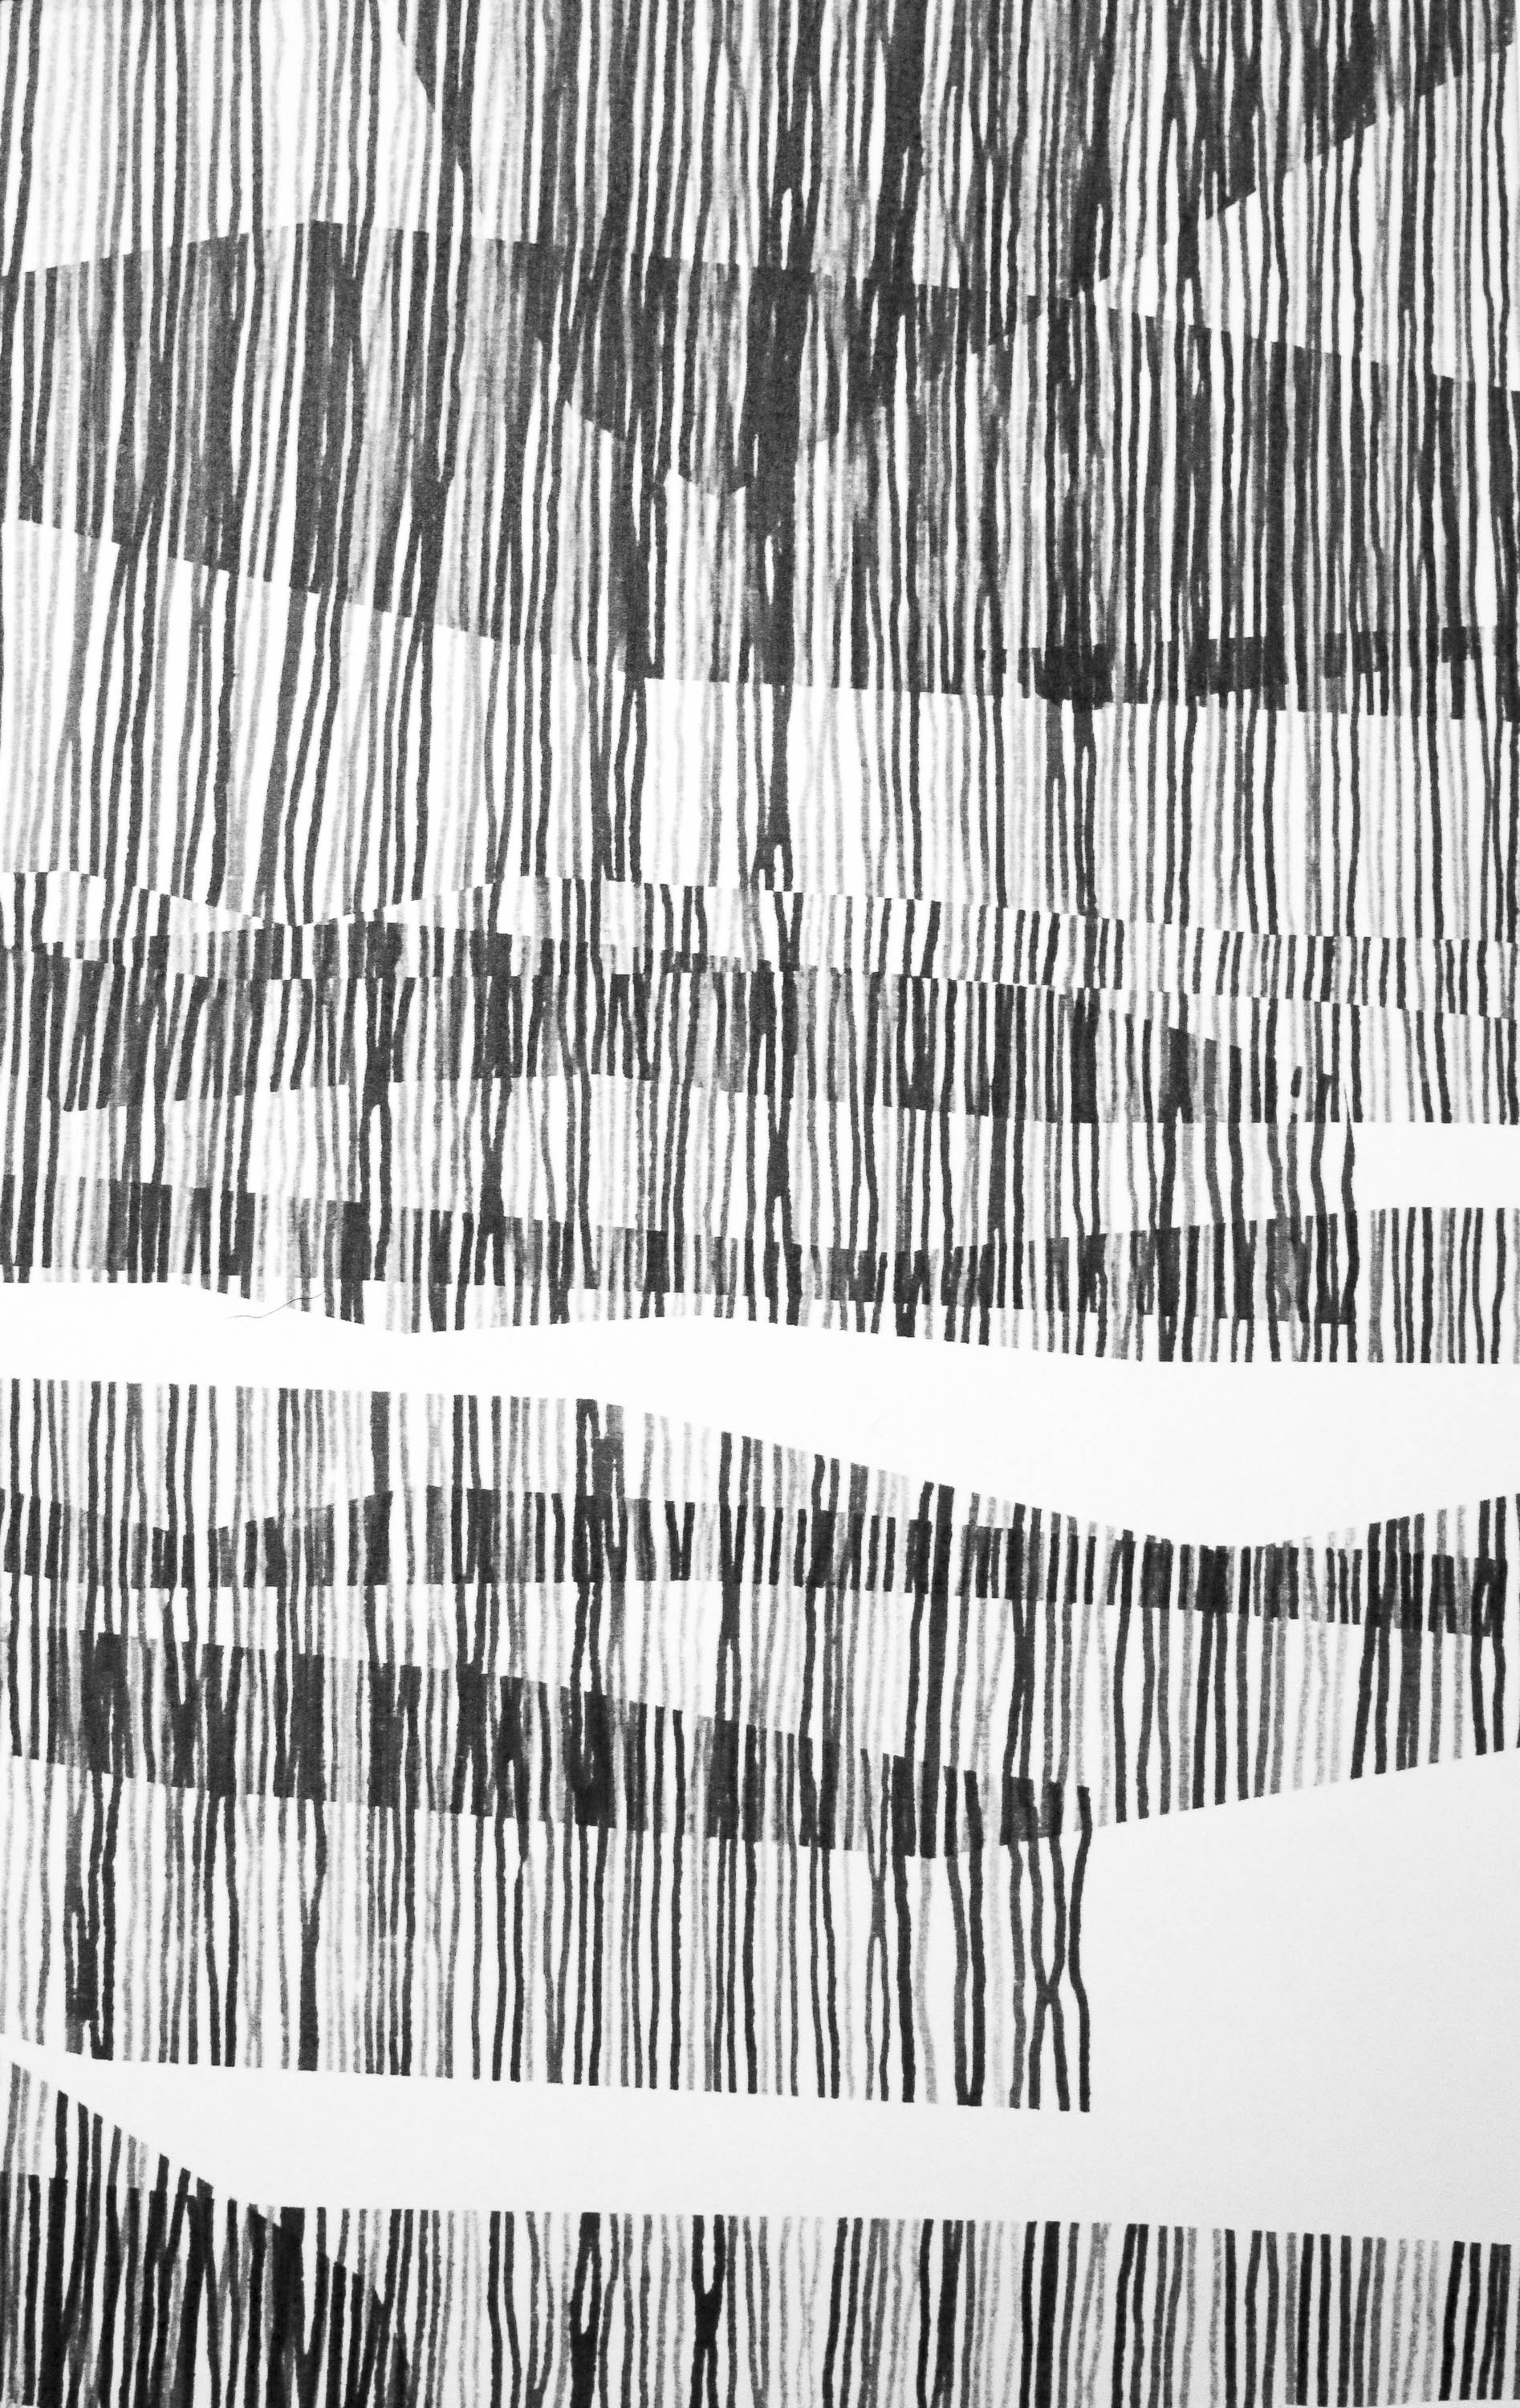 Abstract pattern made up of irregular vertical lines, overlapping to create shapes, and sitting alongside negative space.